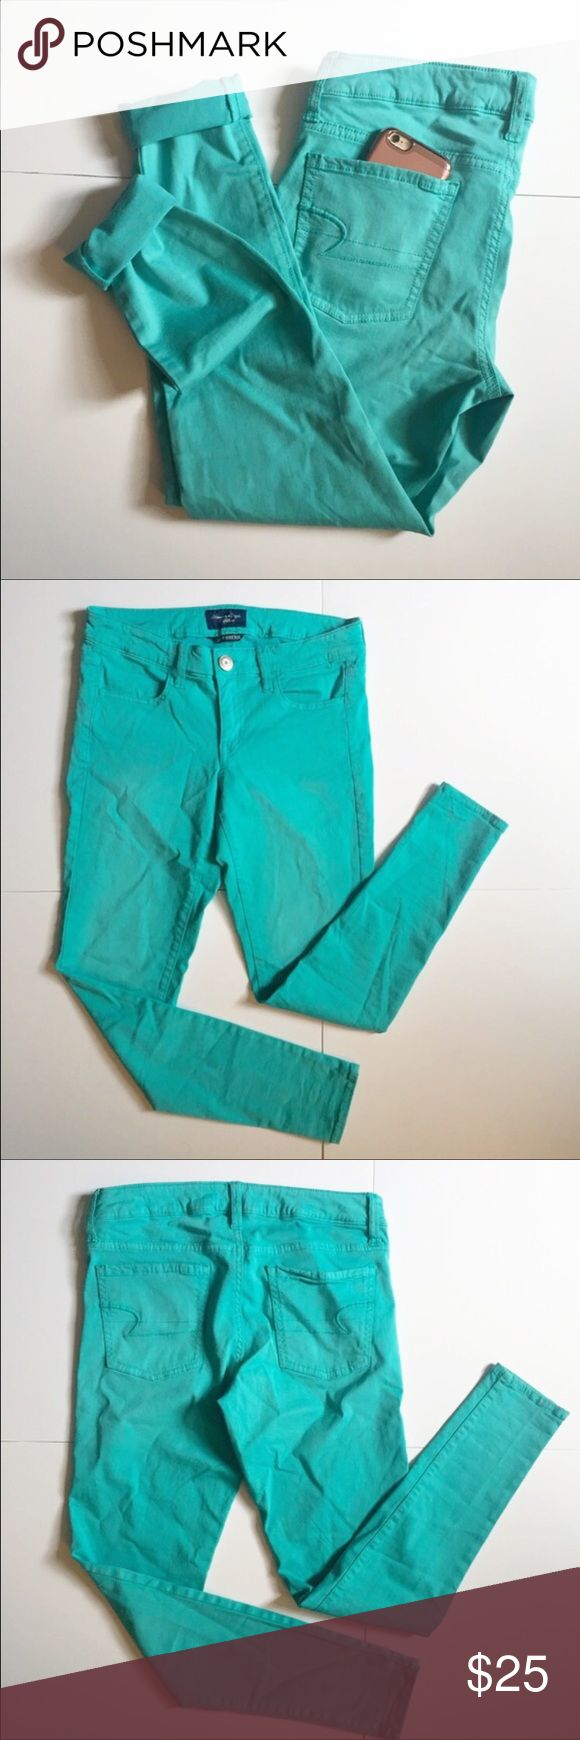 "American Eagle Super Stretch Aqua Pants American Eagle Blue / Teal / Aqua / Dark Mint colored skinny jeans/pants. 35"" long, 27"" inseam, ankle cuff 4 1/2"" laying flat, knee 6 1/2"" flat, thigh 9 1/2"" flat, waist 14 1/2"" laying flat. 54% cotton, 43% rayon, and 3% spandex. Minor wear- Good condition! Style is super stretch skinny pant. NO TRADES. American Eagle Outfitters Pants Skinny"